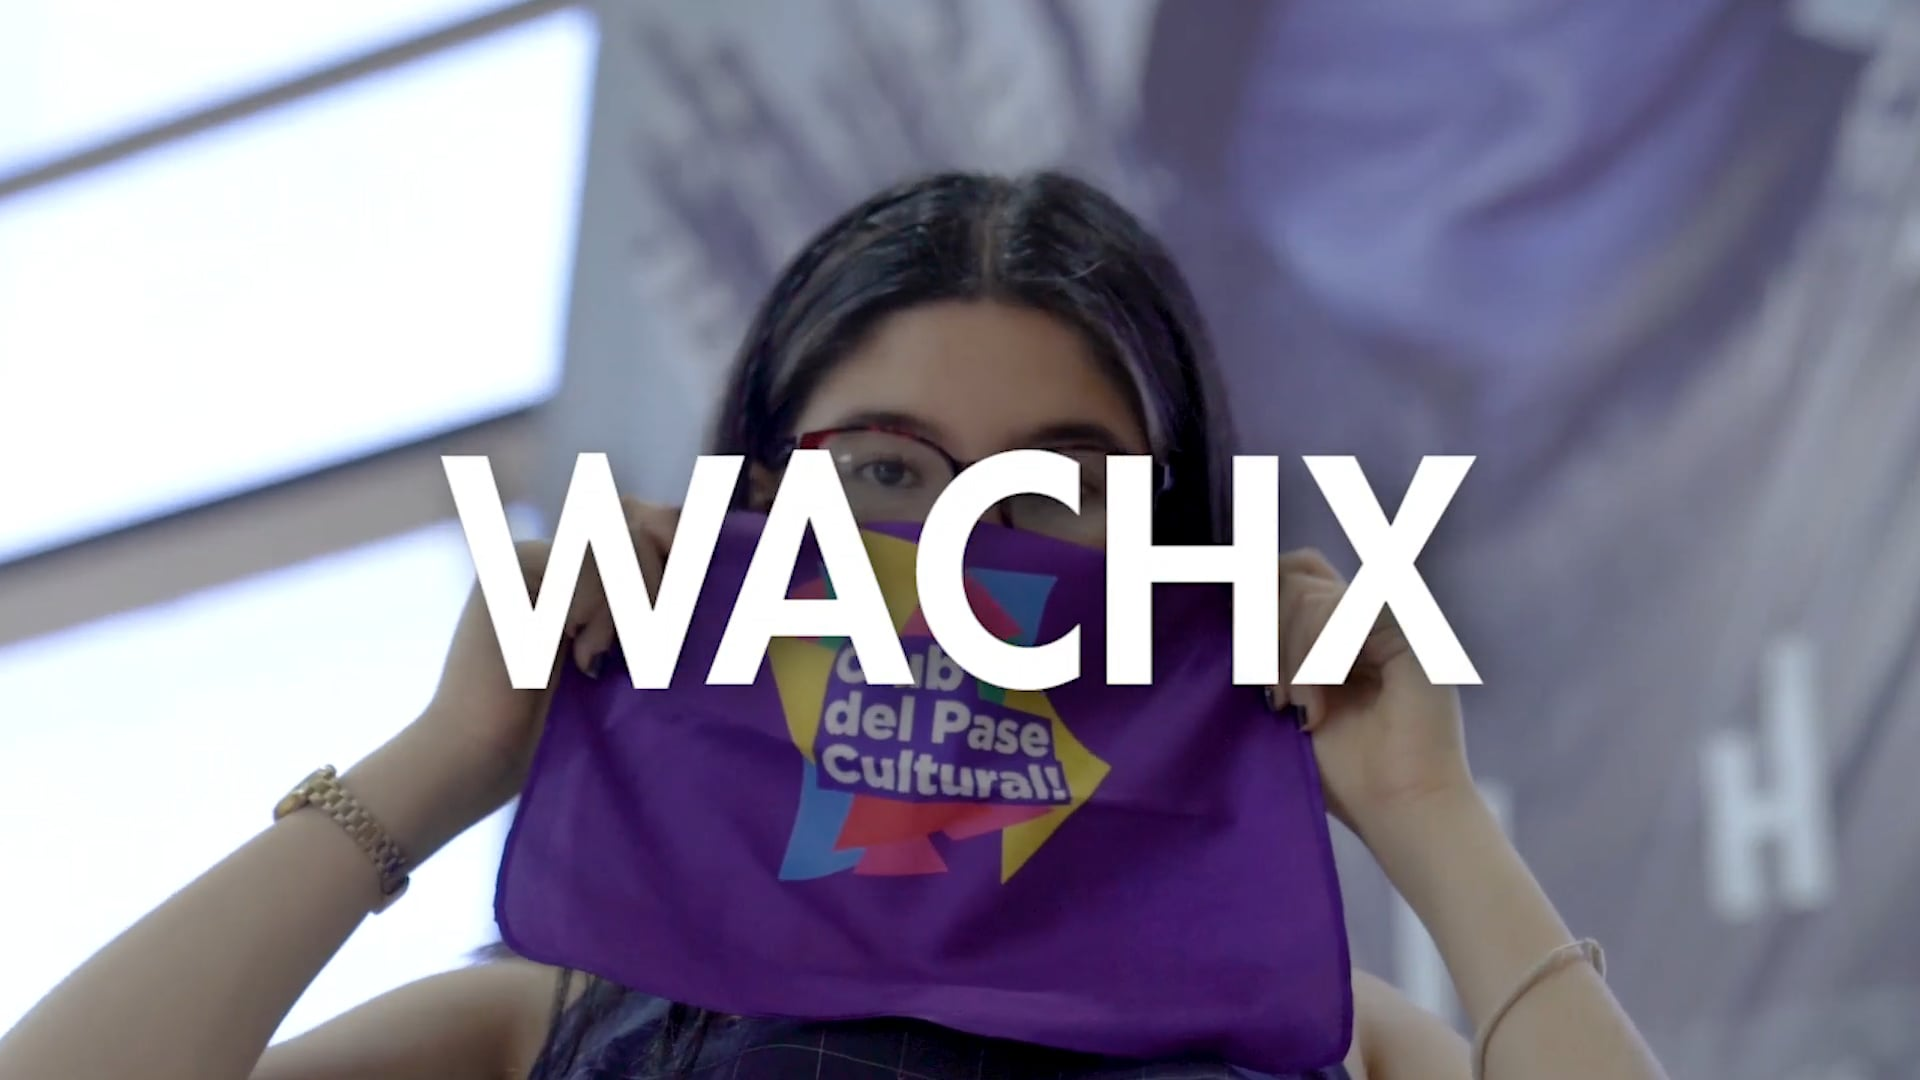 BUENOS AIRES - Wachxs